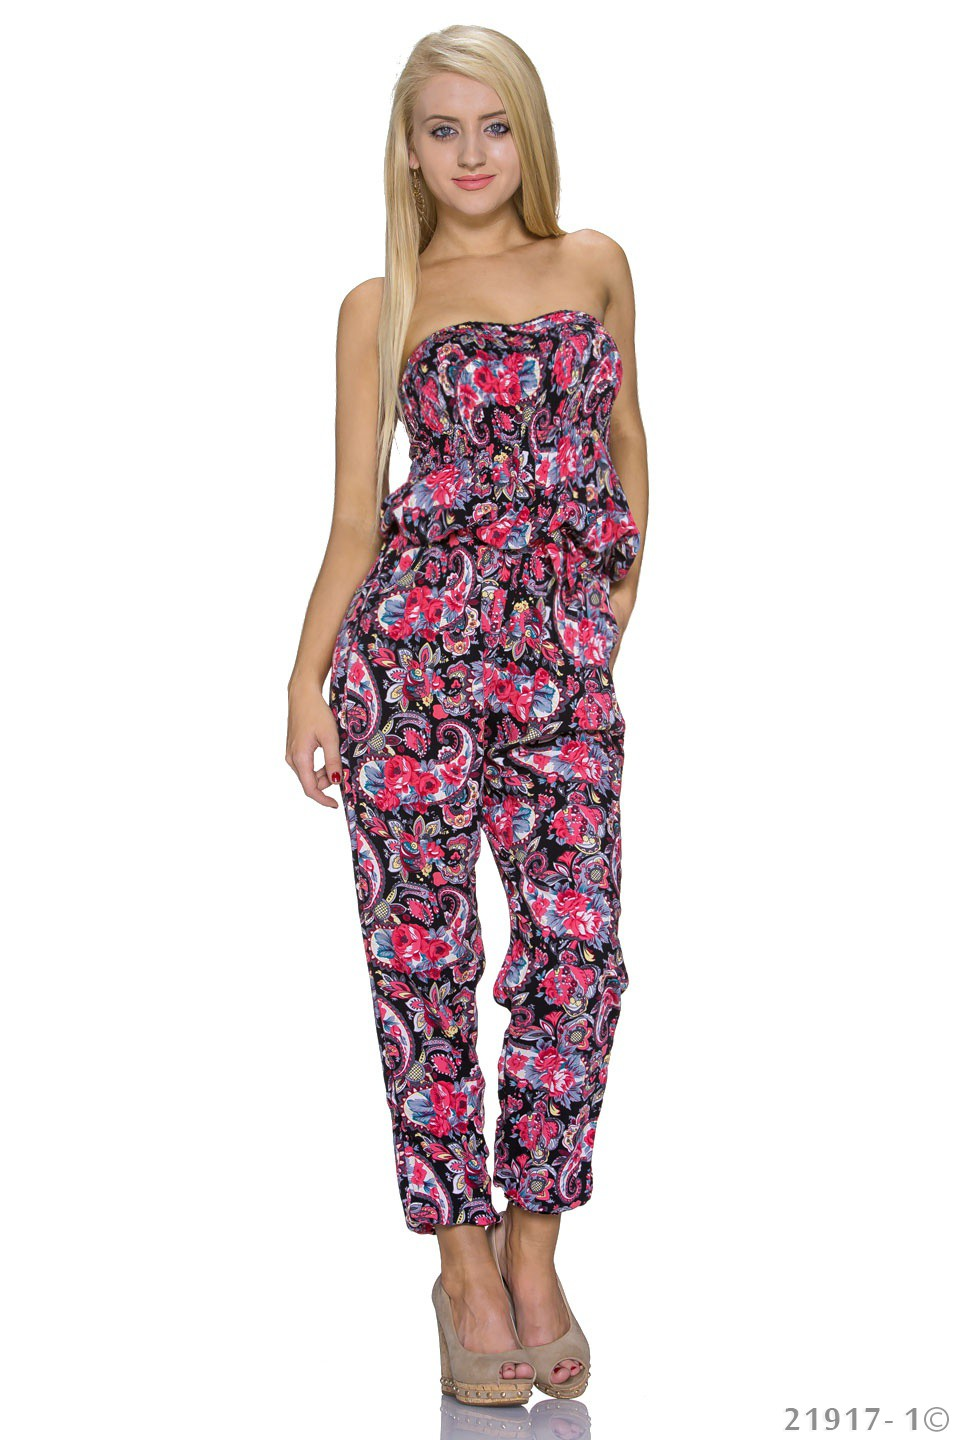 Bandeau Jumpsuit Overall in Rot Schwarz